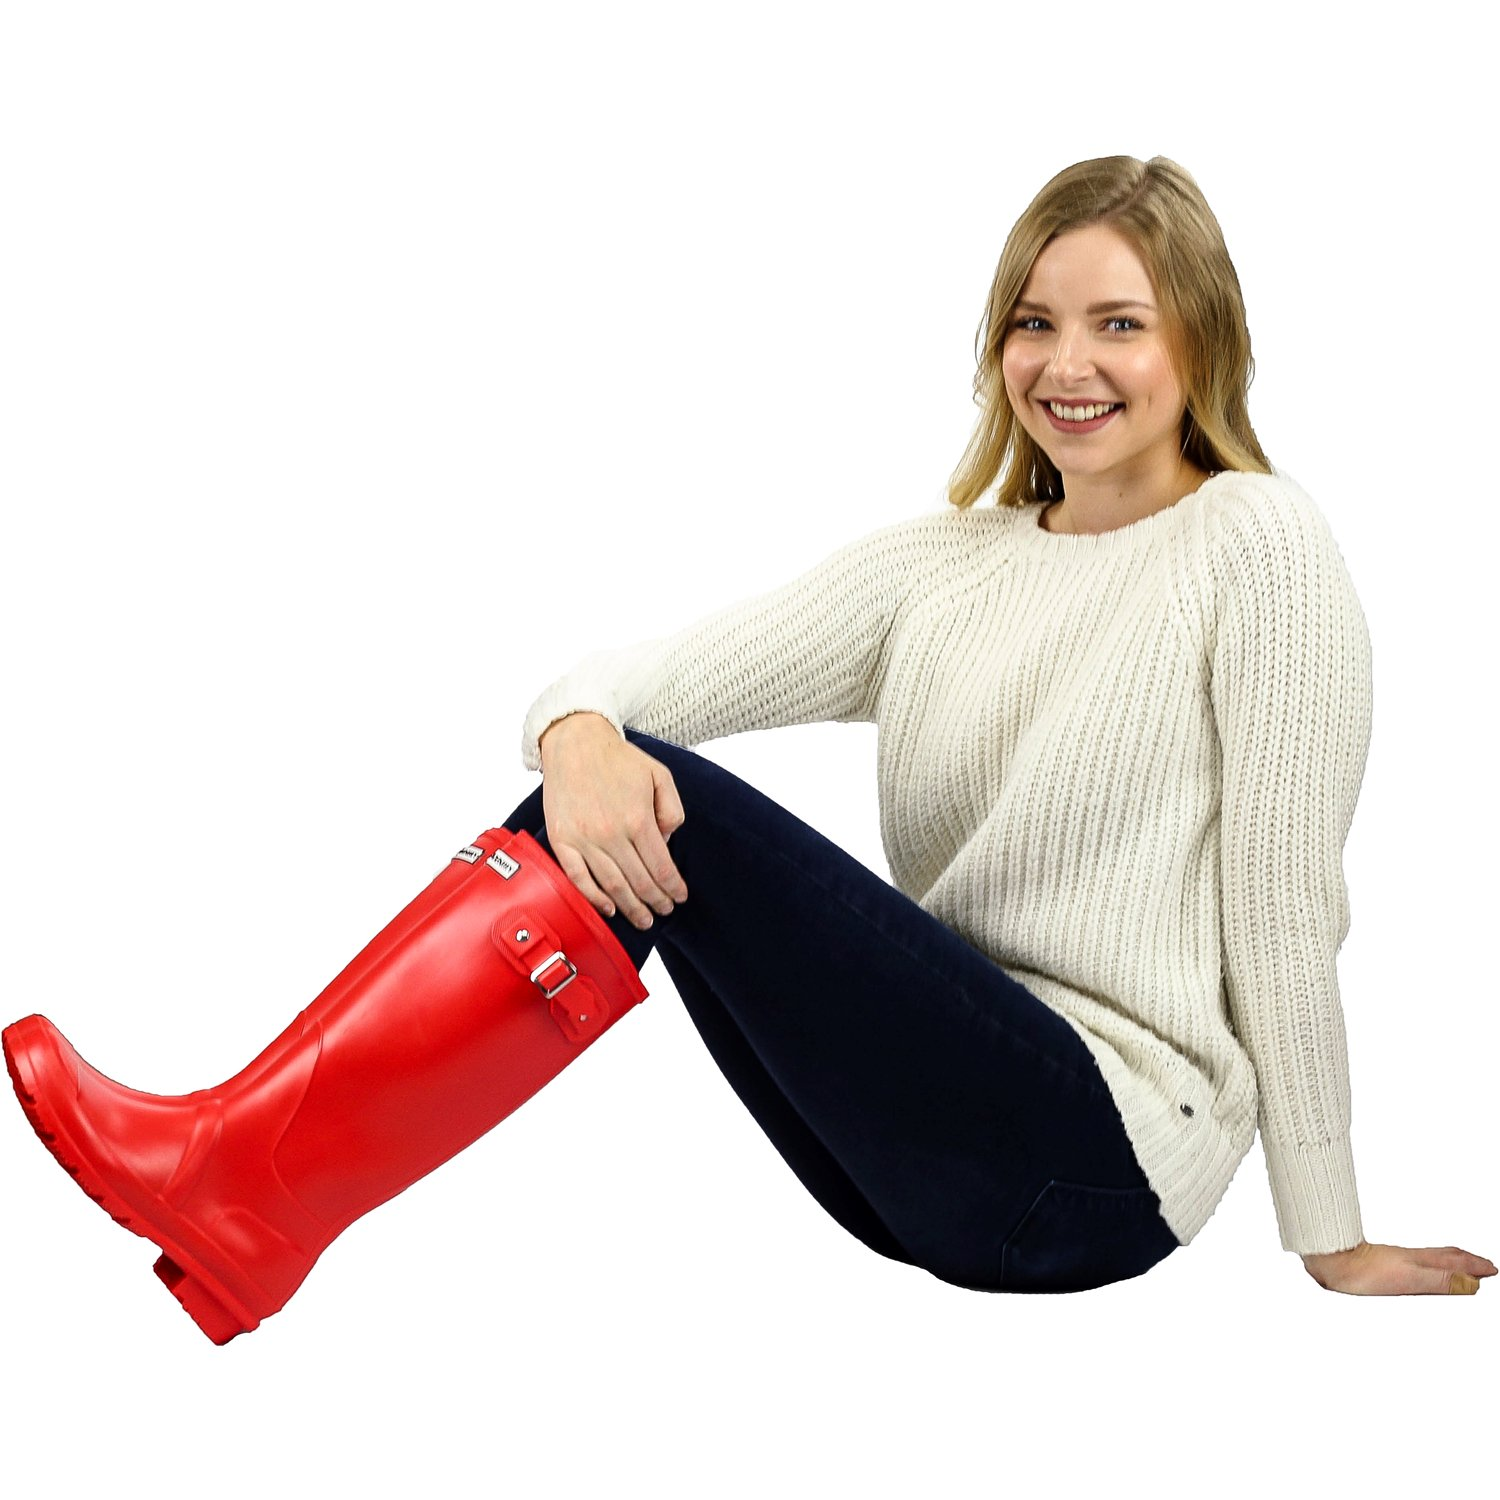 Exotic Identity Women's Original Tall Gloss Red Knee-High Rubber Rain Boot 8M by Exotic Identity